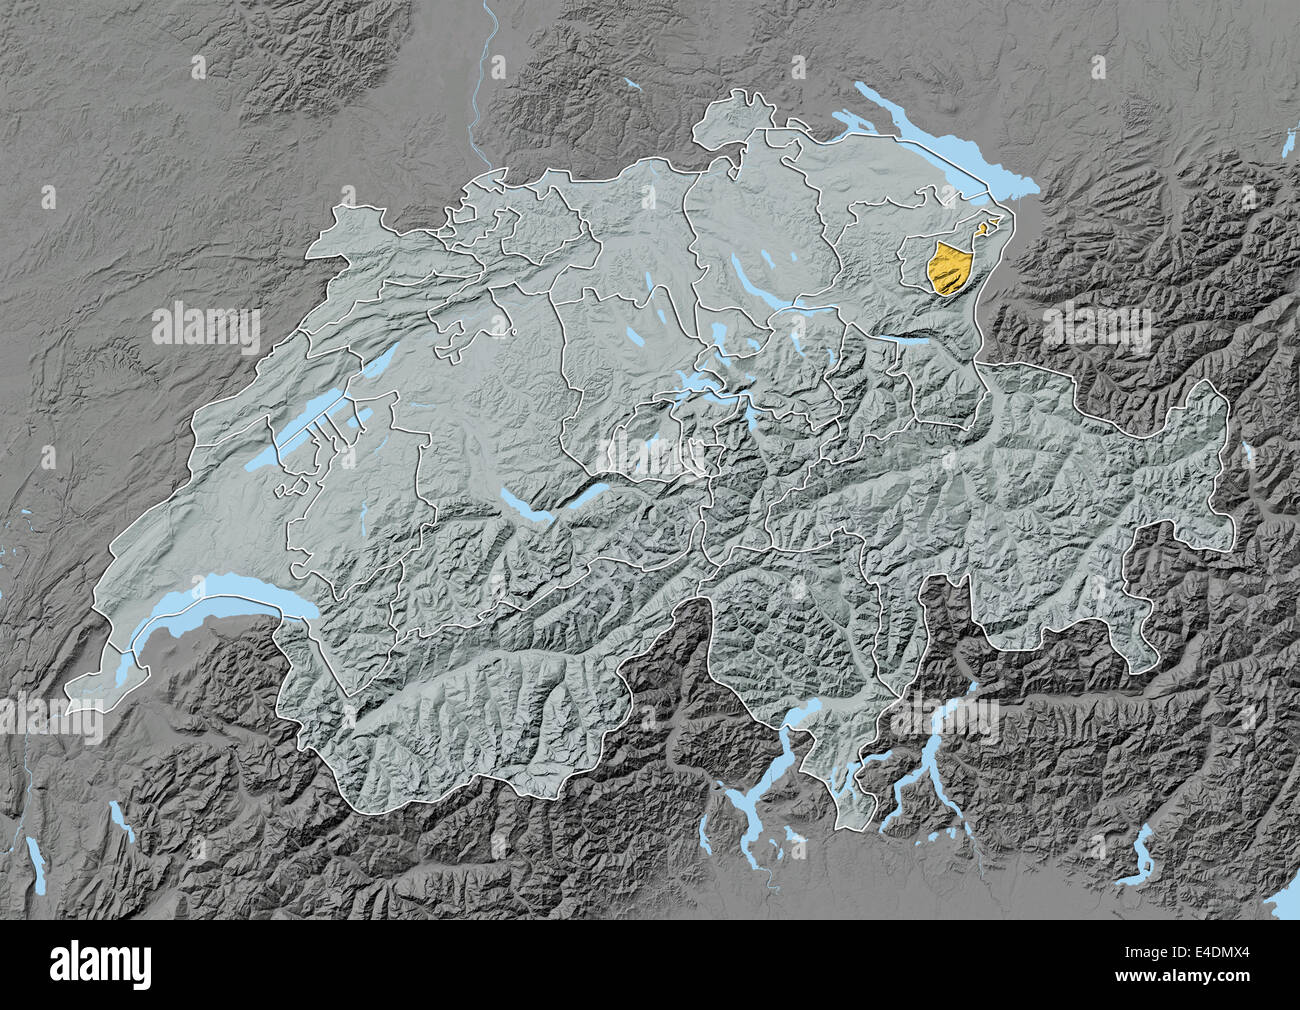 Canton of Appenzell Innerrhoden Switzerland Relief Map Stock Photo